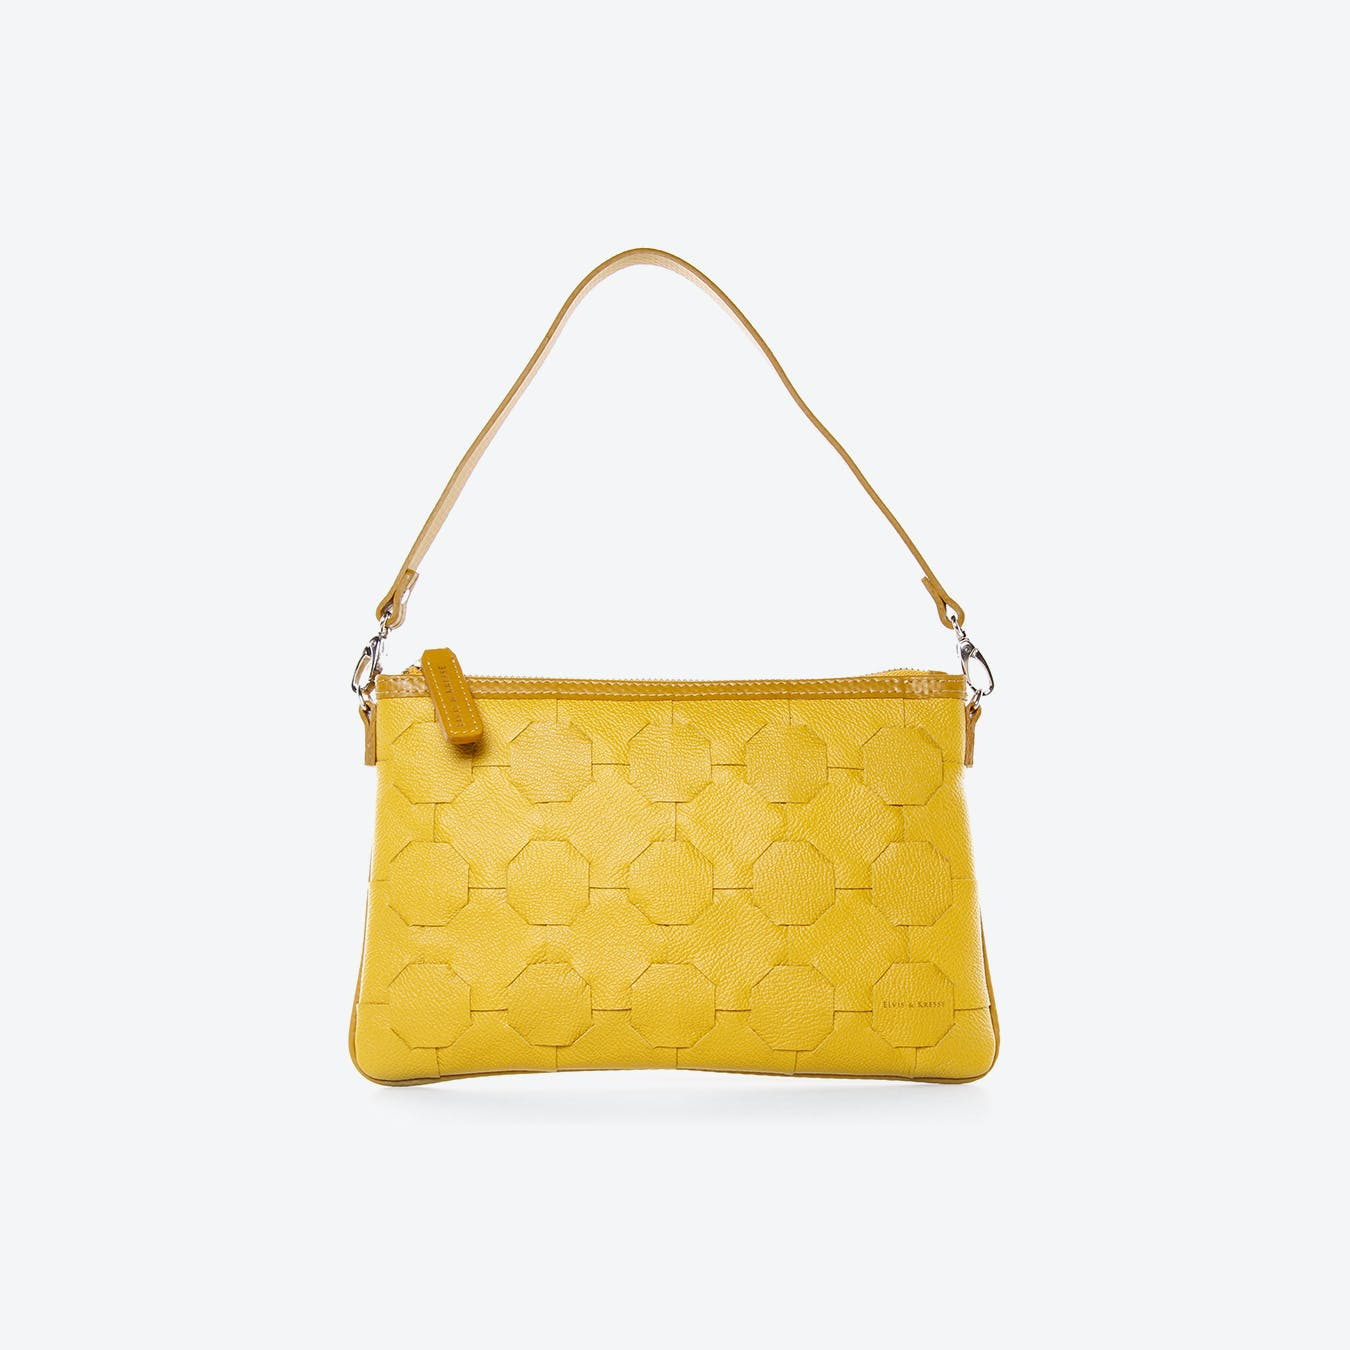 Fire & Hide Clutch Bag in Yellow Burberry Leather